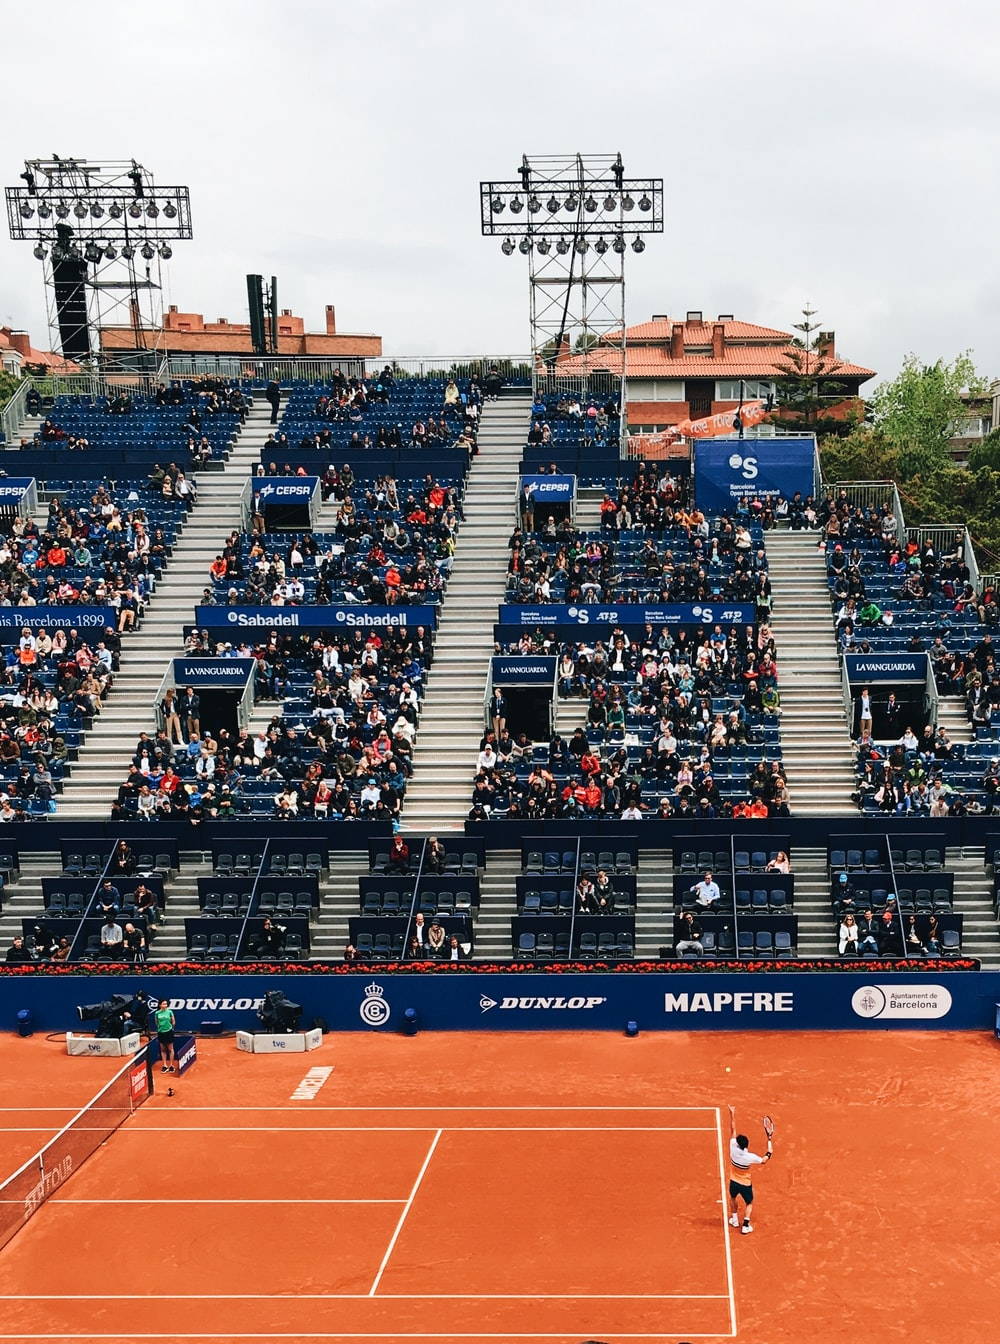 people sitting on bleachers while watching lawn tennis game during daytime